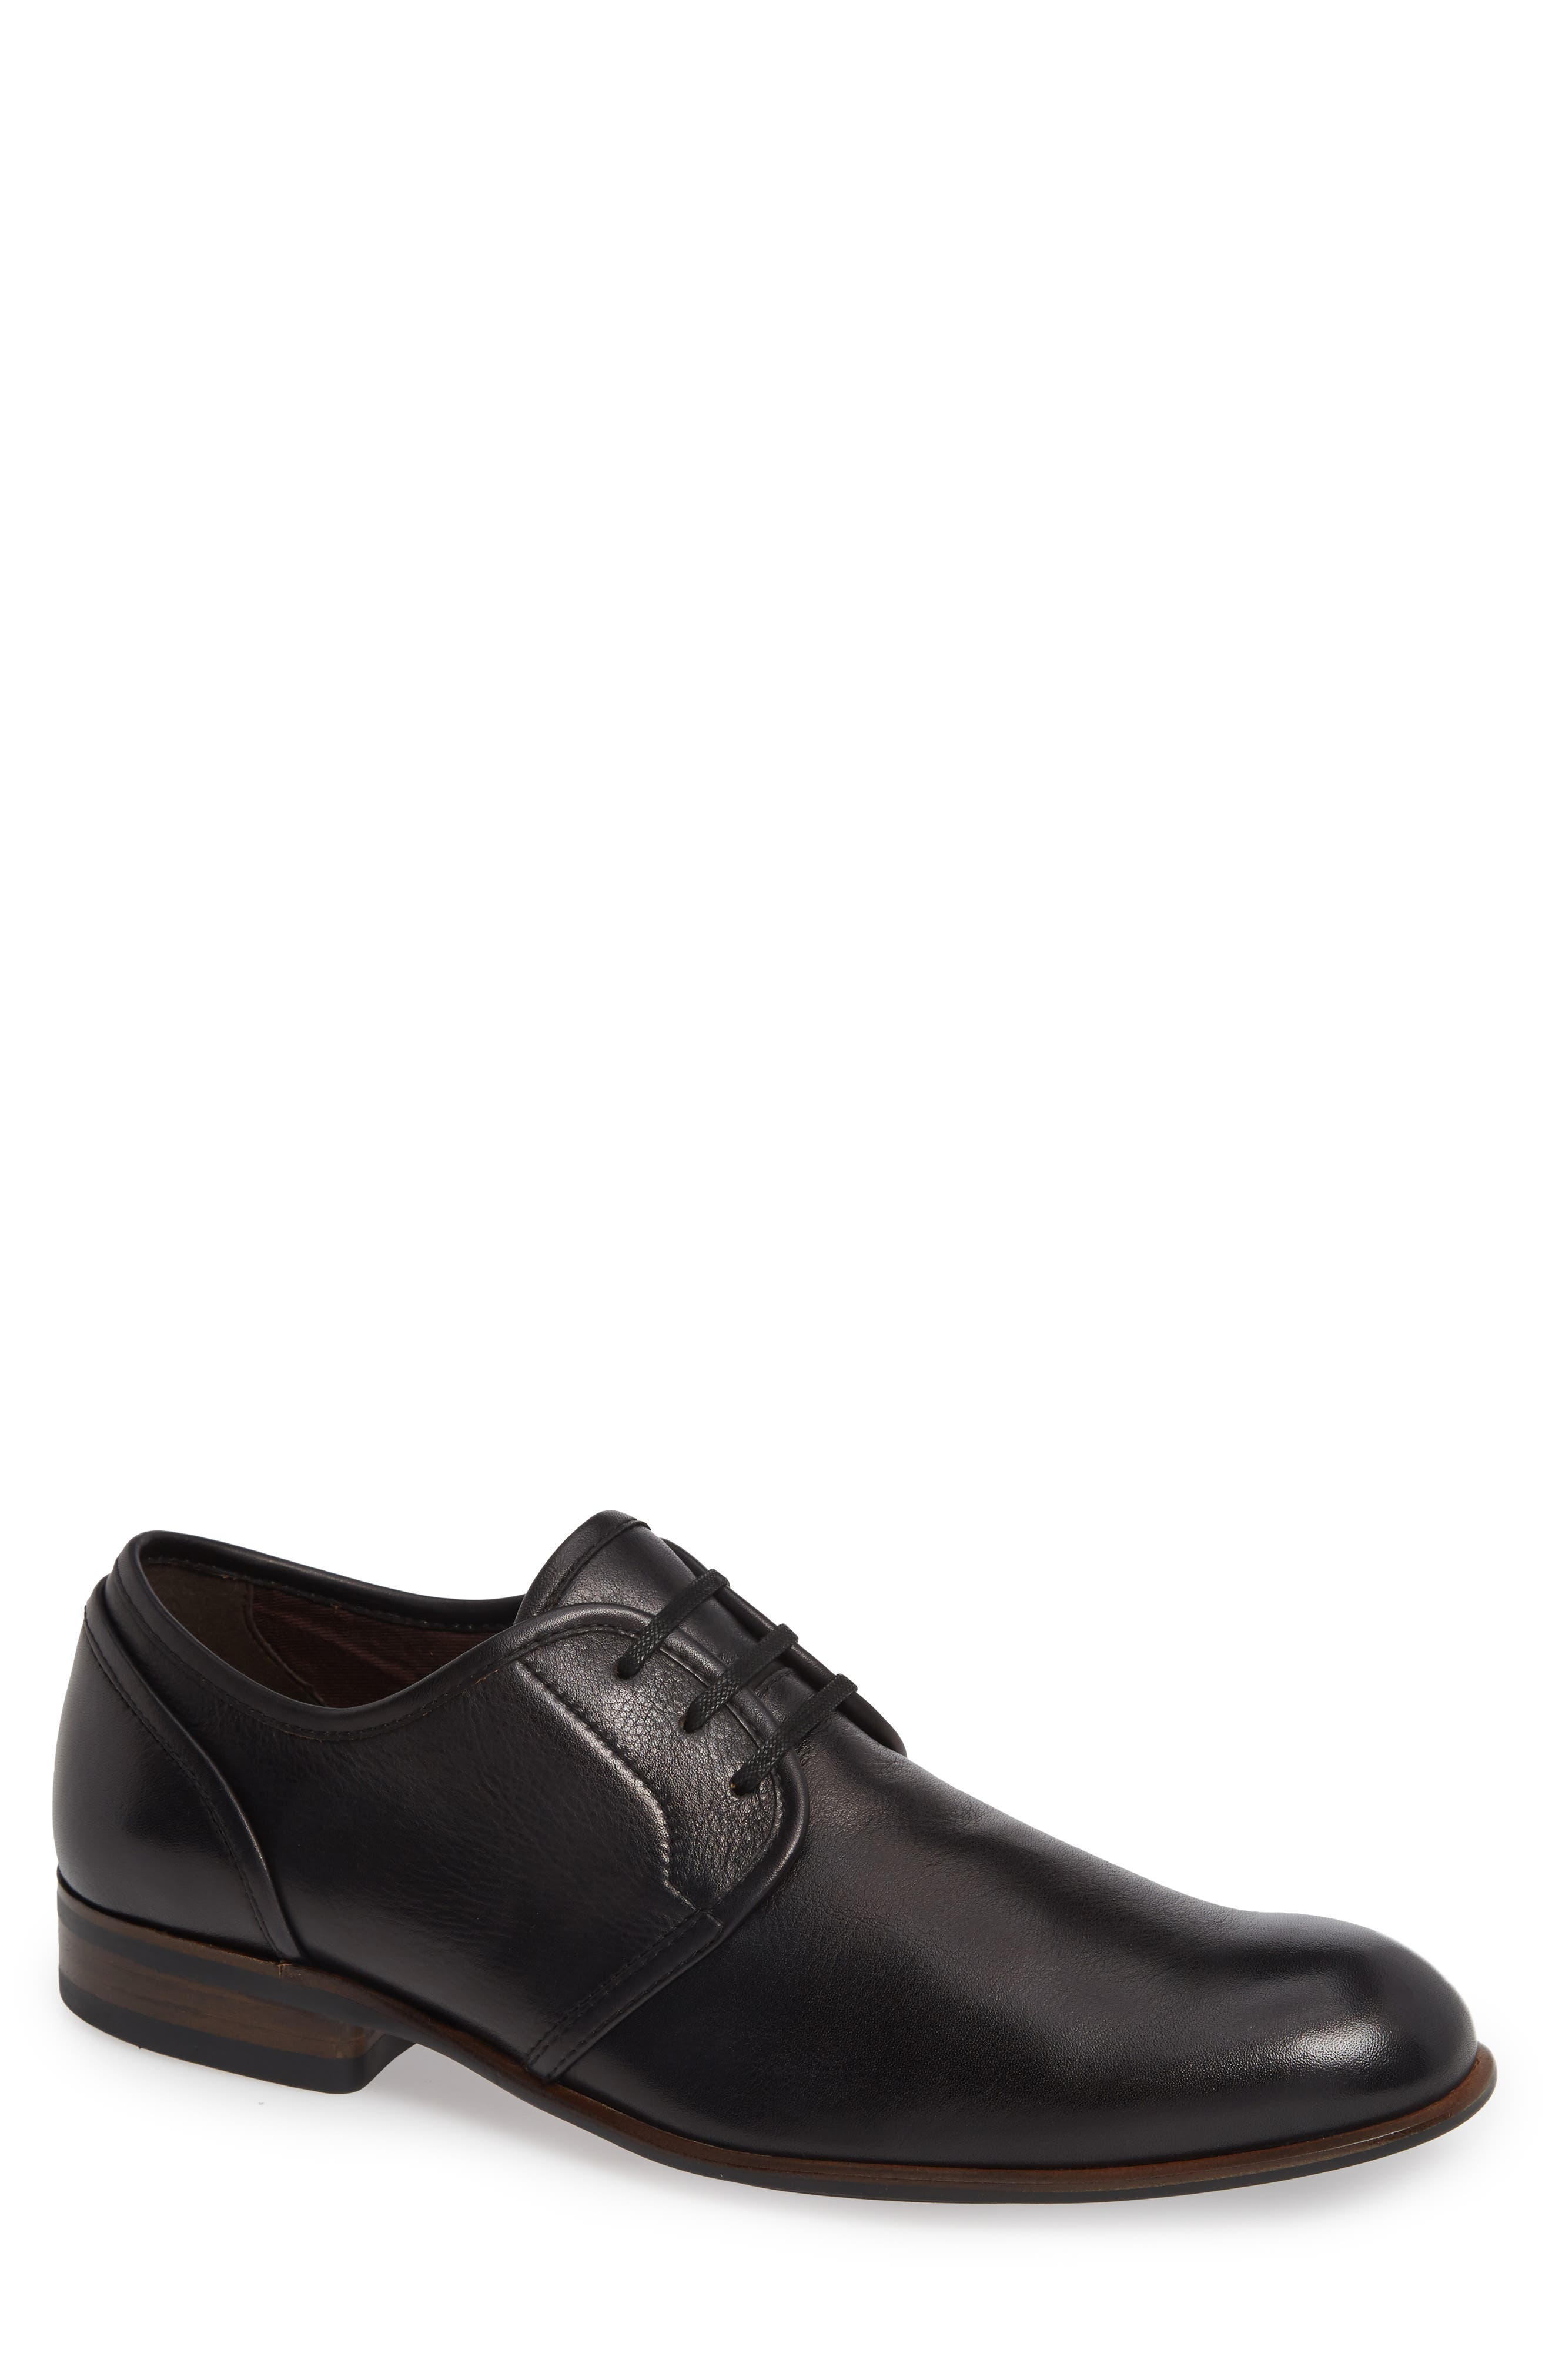 Star USA Seagher Plain Toe Derby, Main, color, BLACK